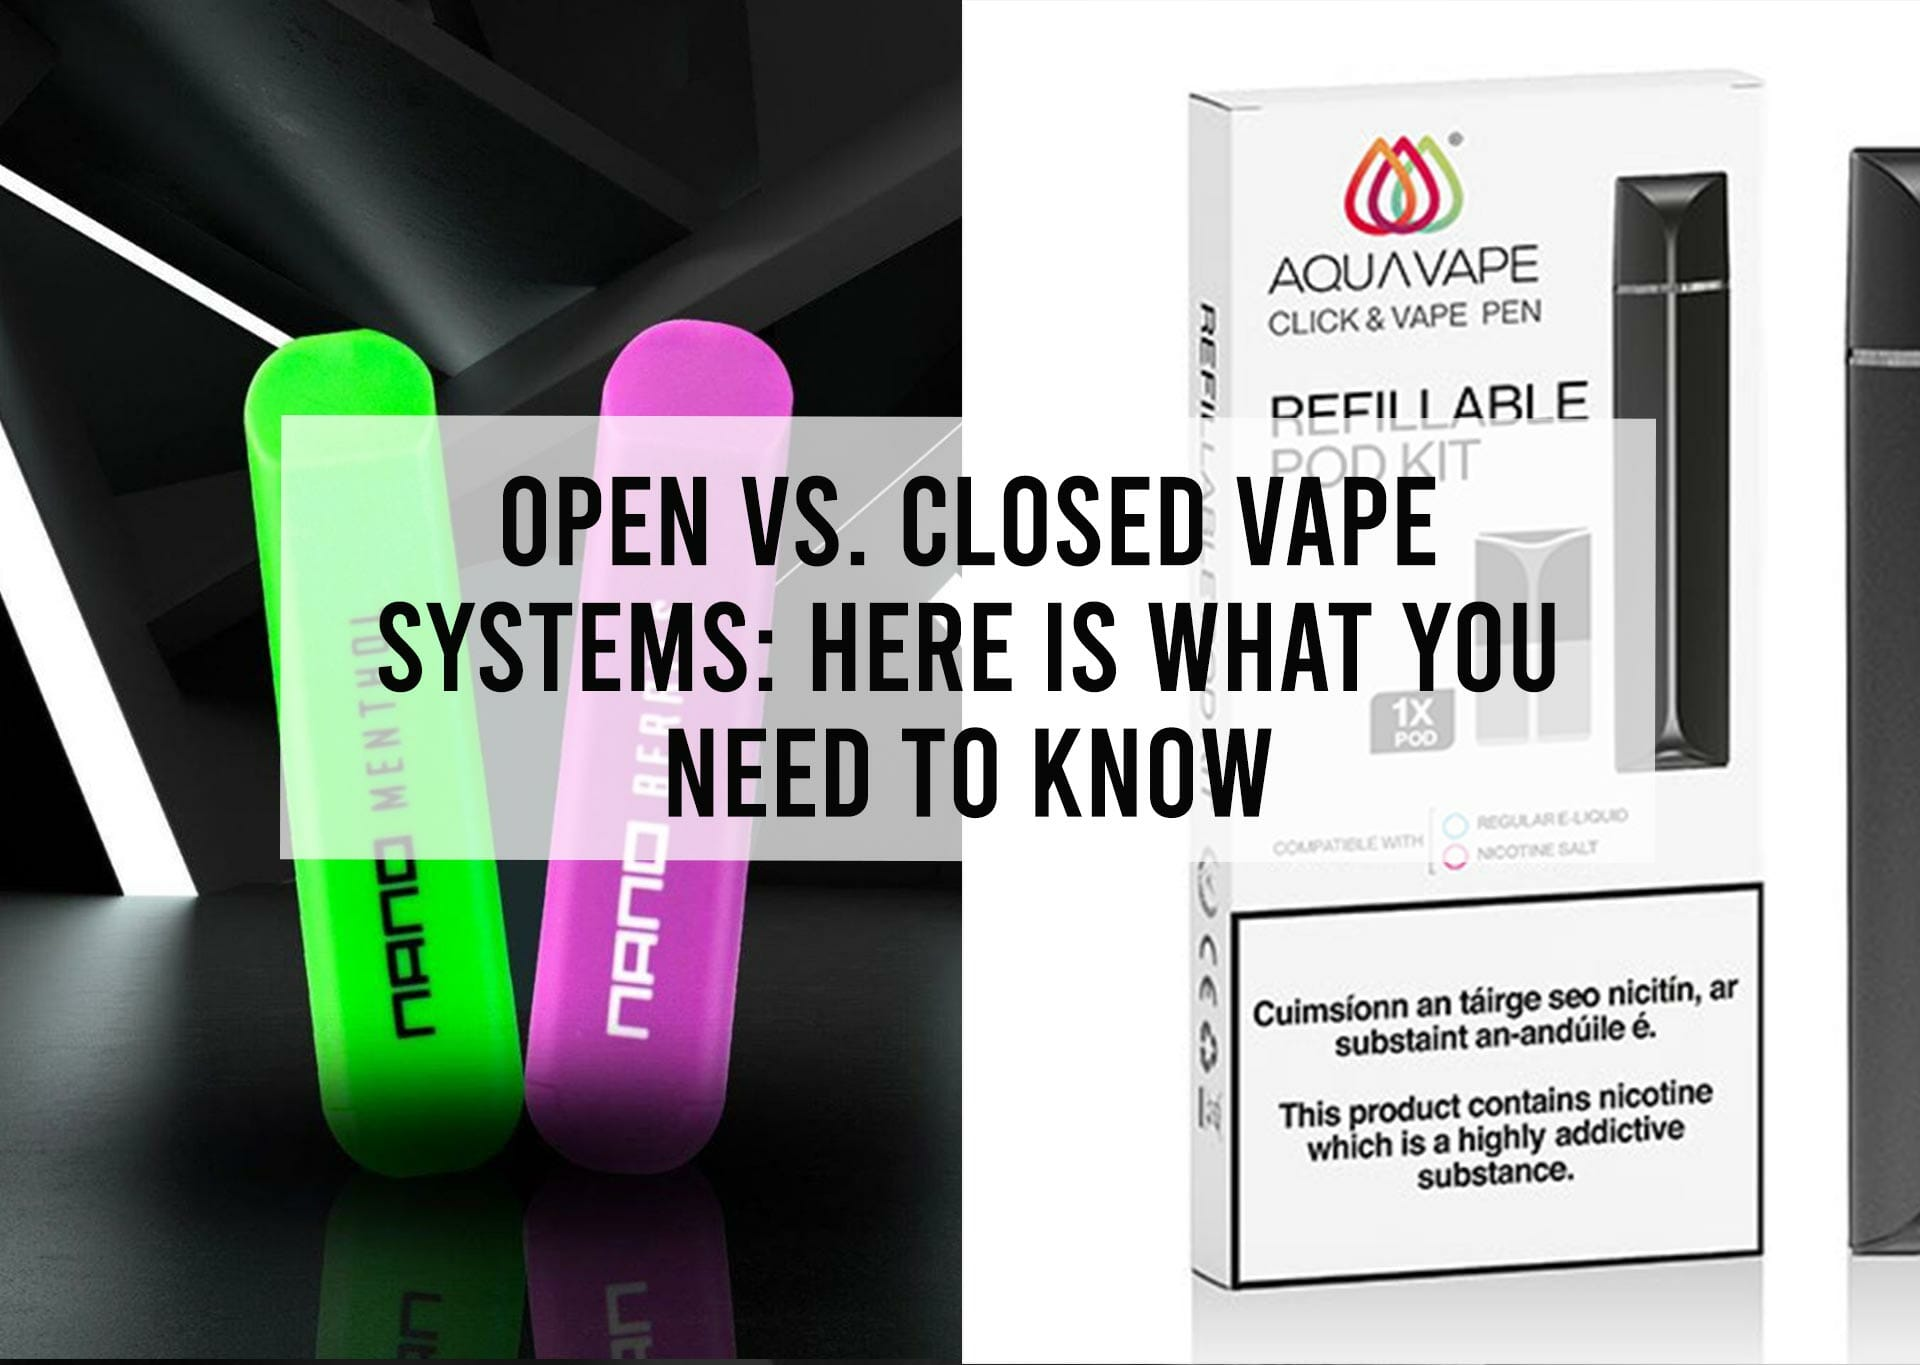 Open-vs.-Closed-Vape-Systems--Here-is-What-You-Need-to-Know